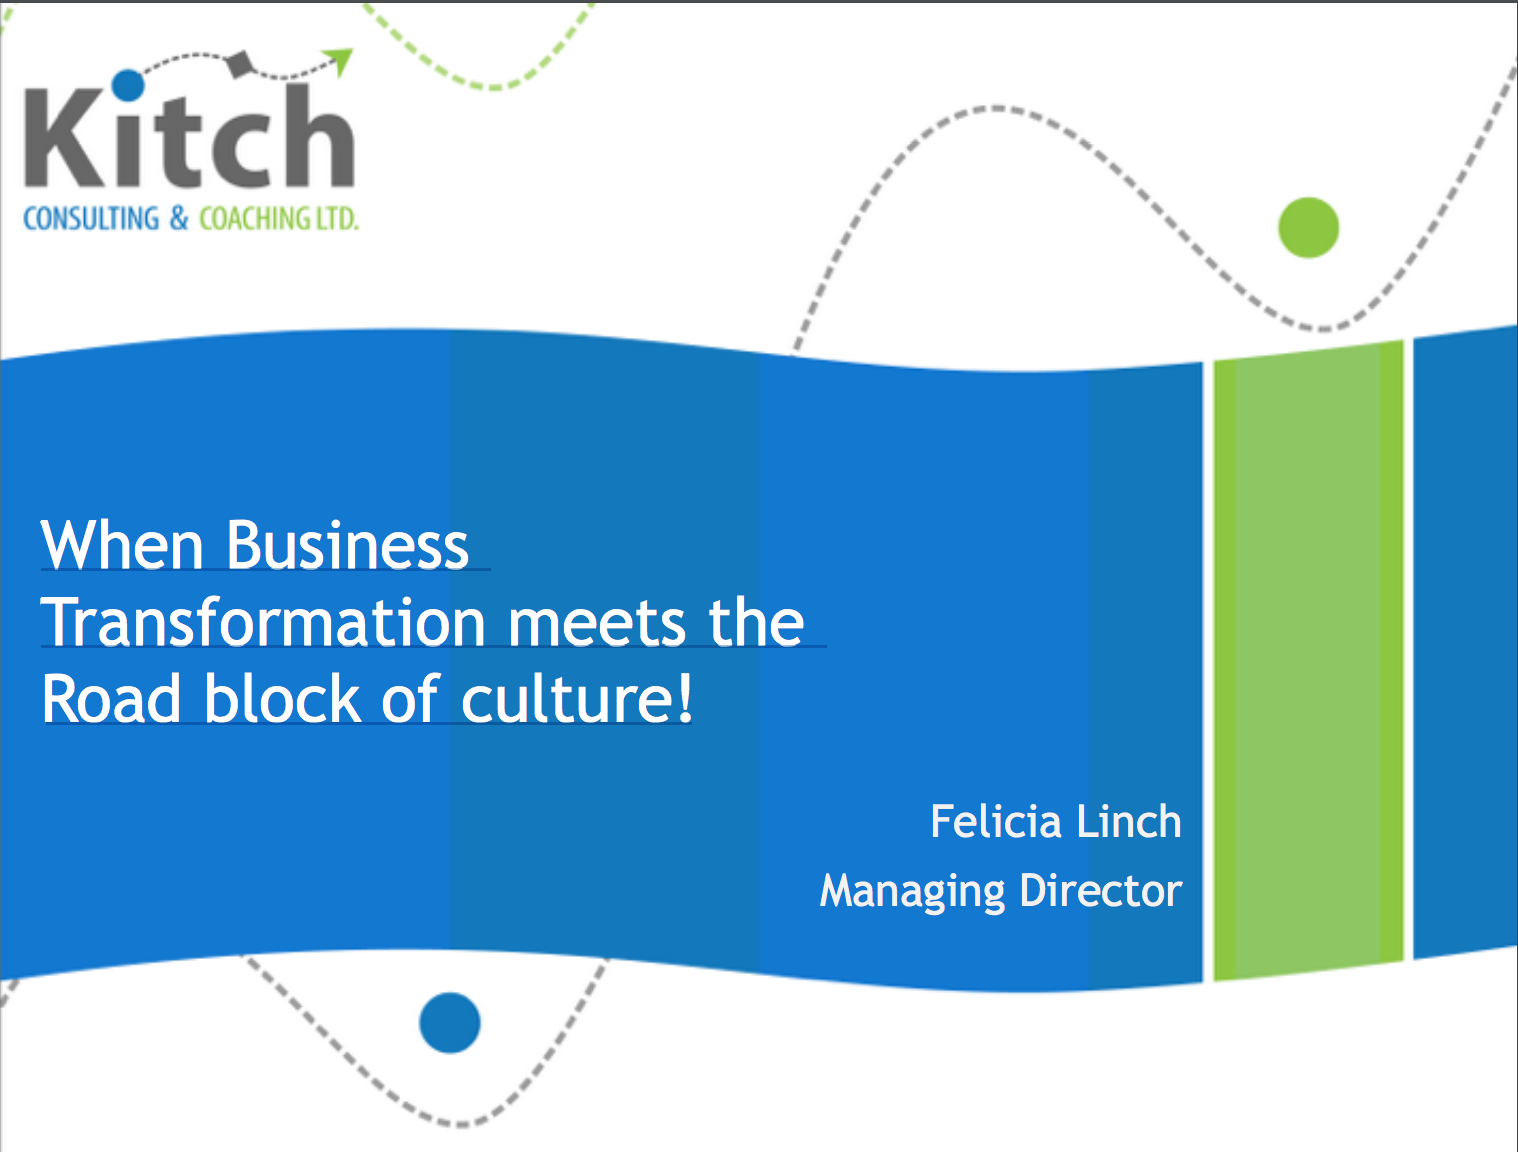 When Business Transformation meets the Road block of culture!